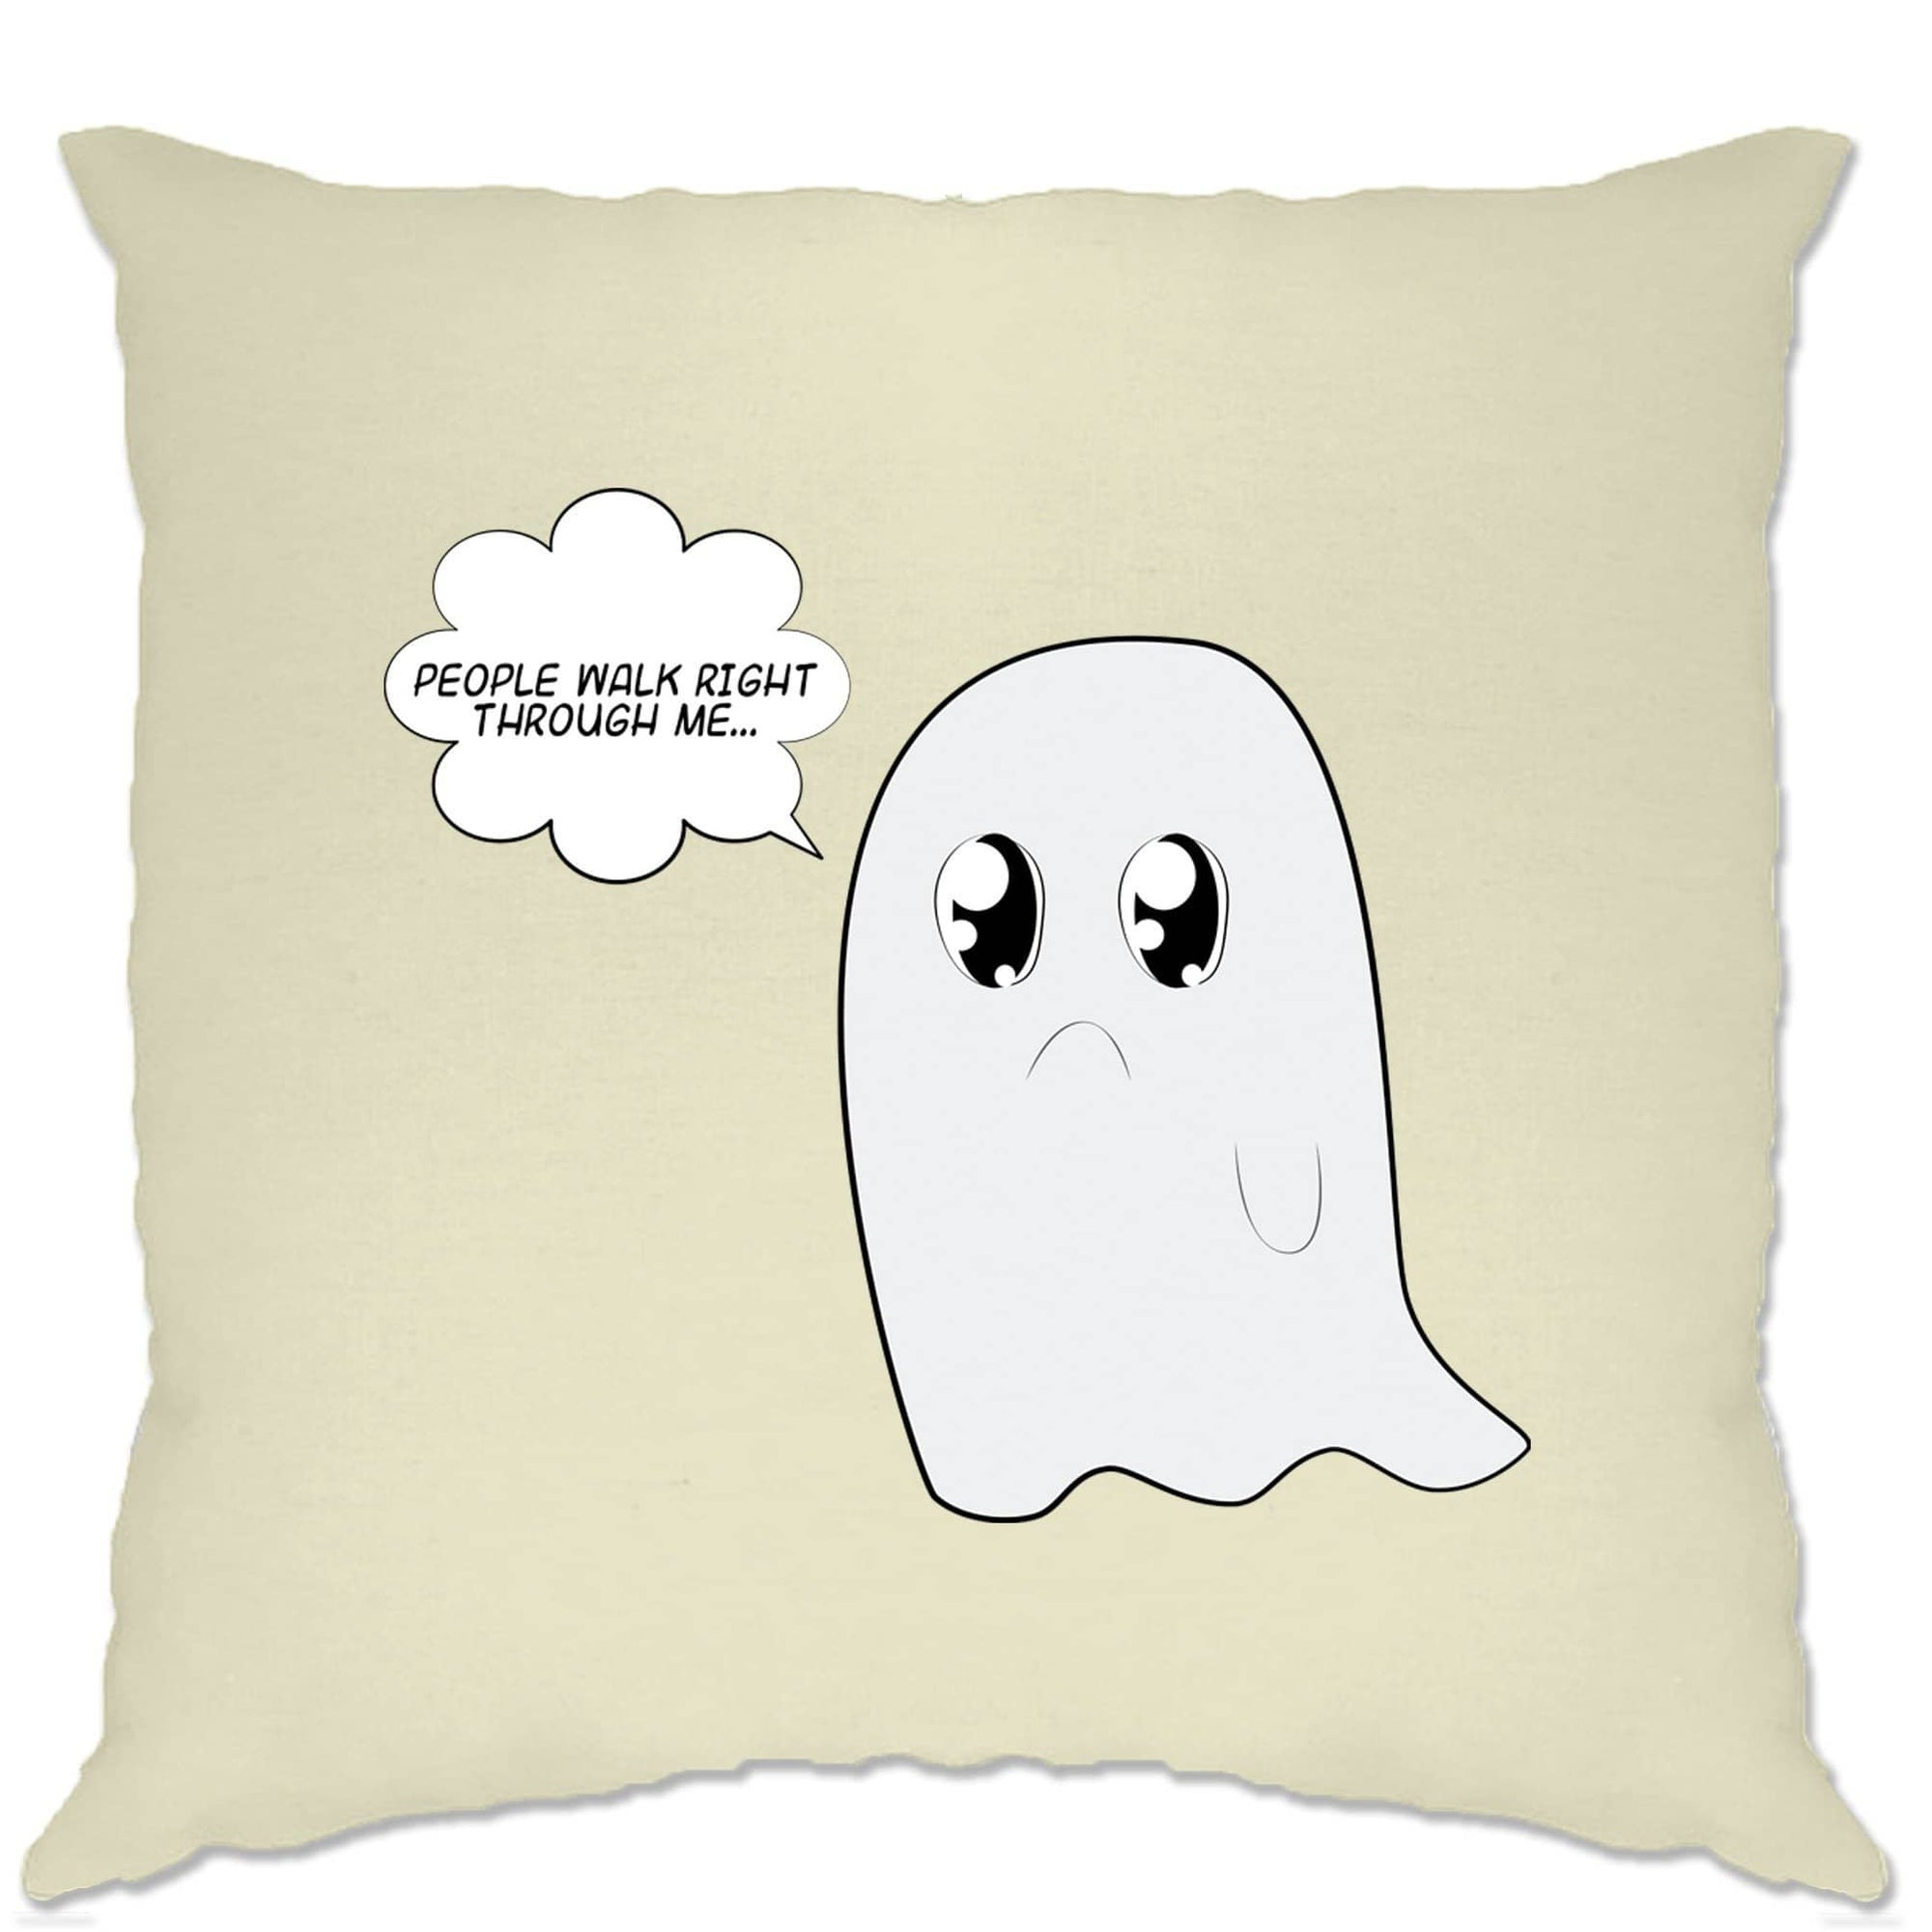 Cute Ghost Cushion Cover People Walk Right Through Me Joke